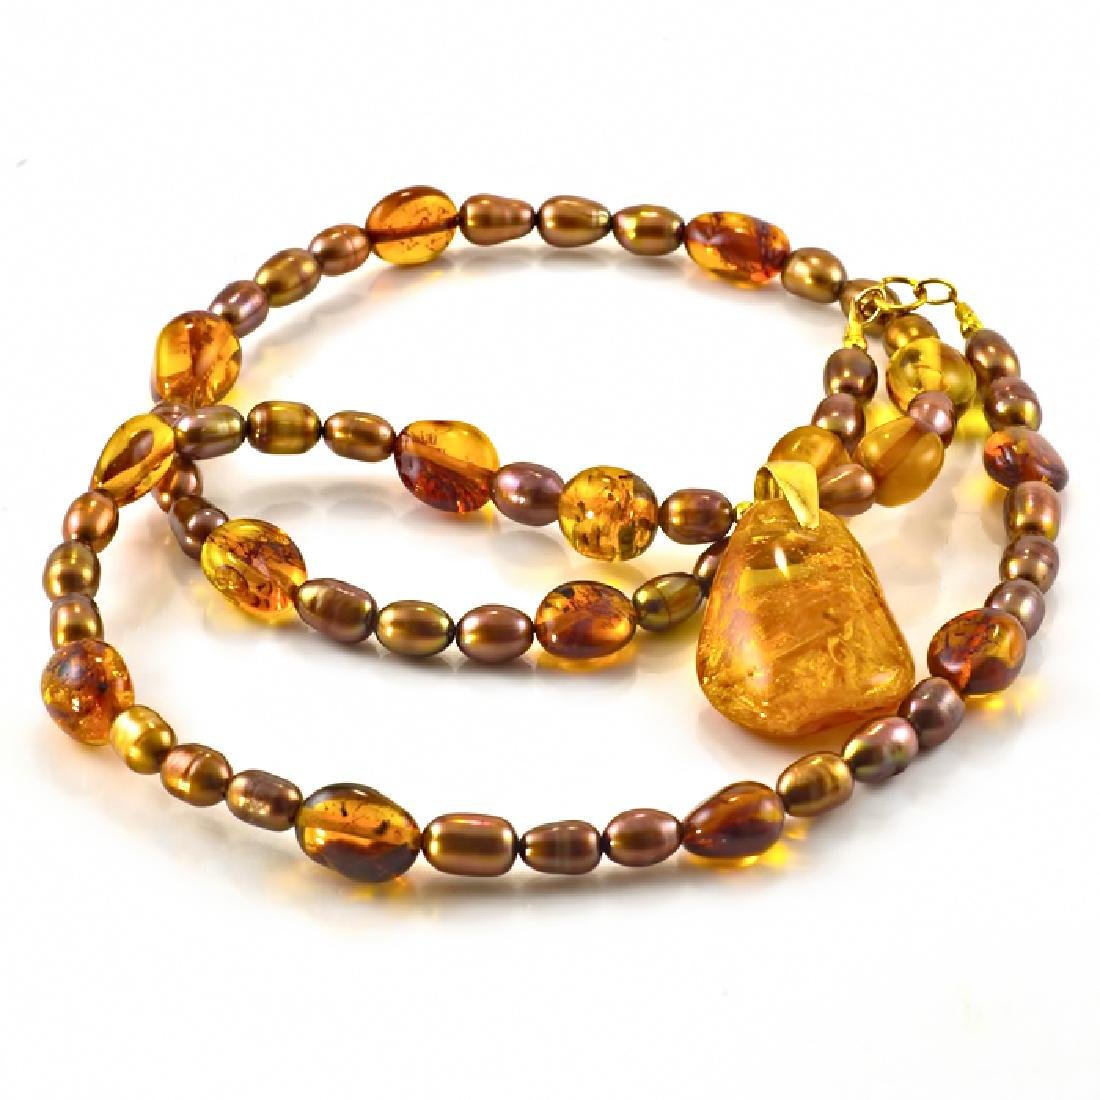 Golden Bronze Pearl and Amber necklace with Amber - 3